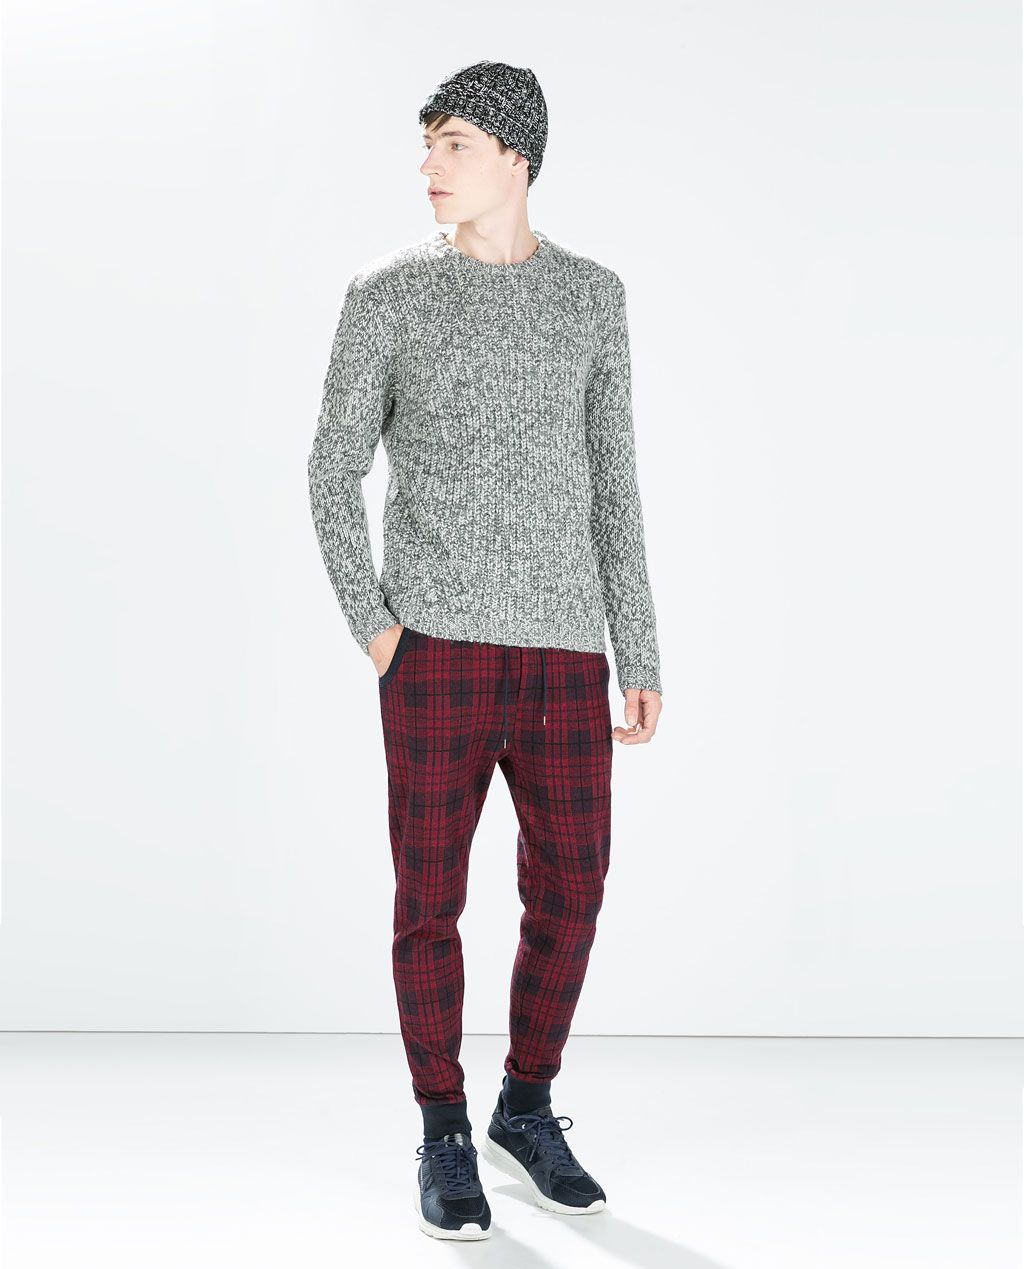 07d73c6e ZARA - MAN - CHECKED TROUSERS | Fashion Zara | Mens plaid pants ...